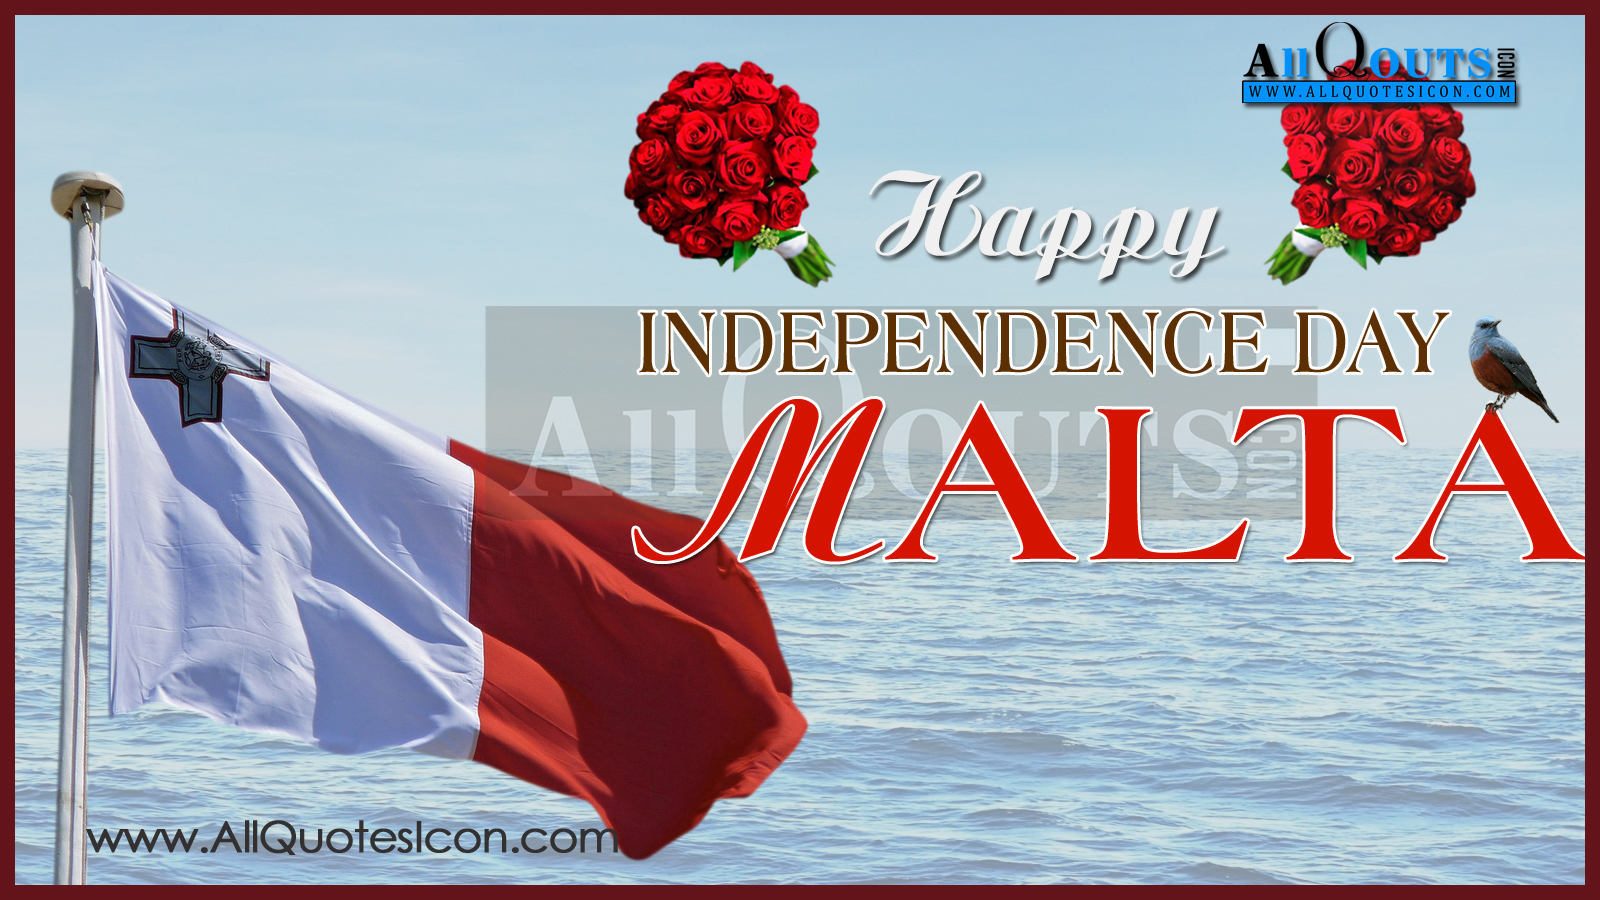 Happy Independence Day Wishes And Wallpapers About Malta Independence Day Greetings In English